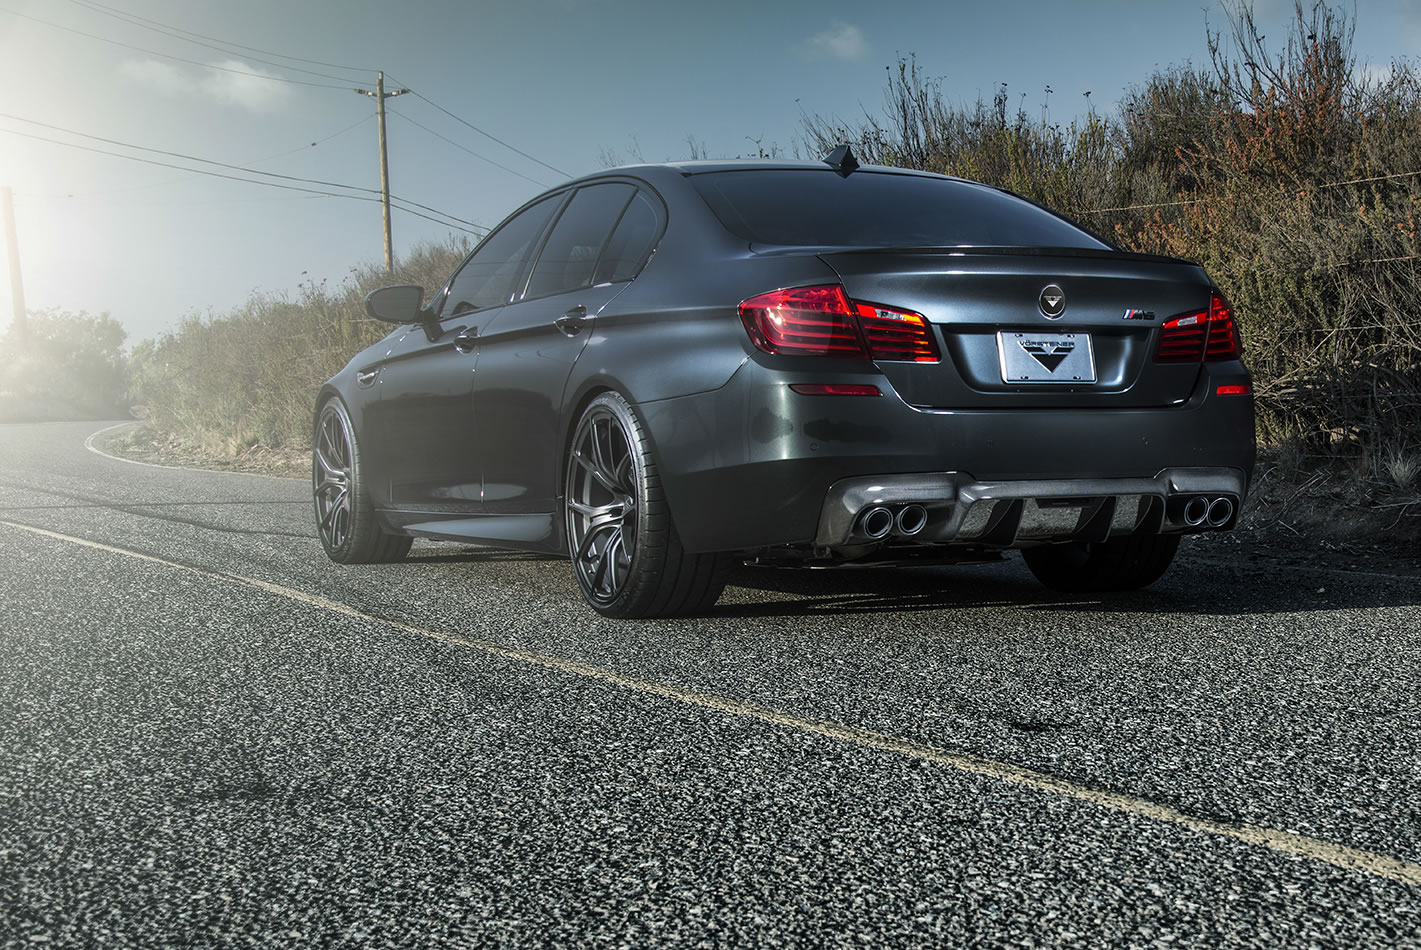 Bmw M Vorsteiner Rear on Hamann Bmw M5